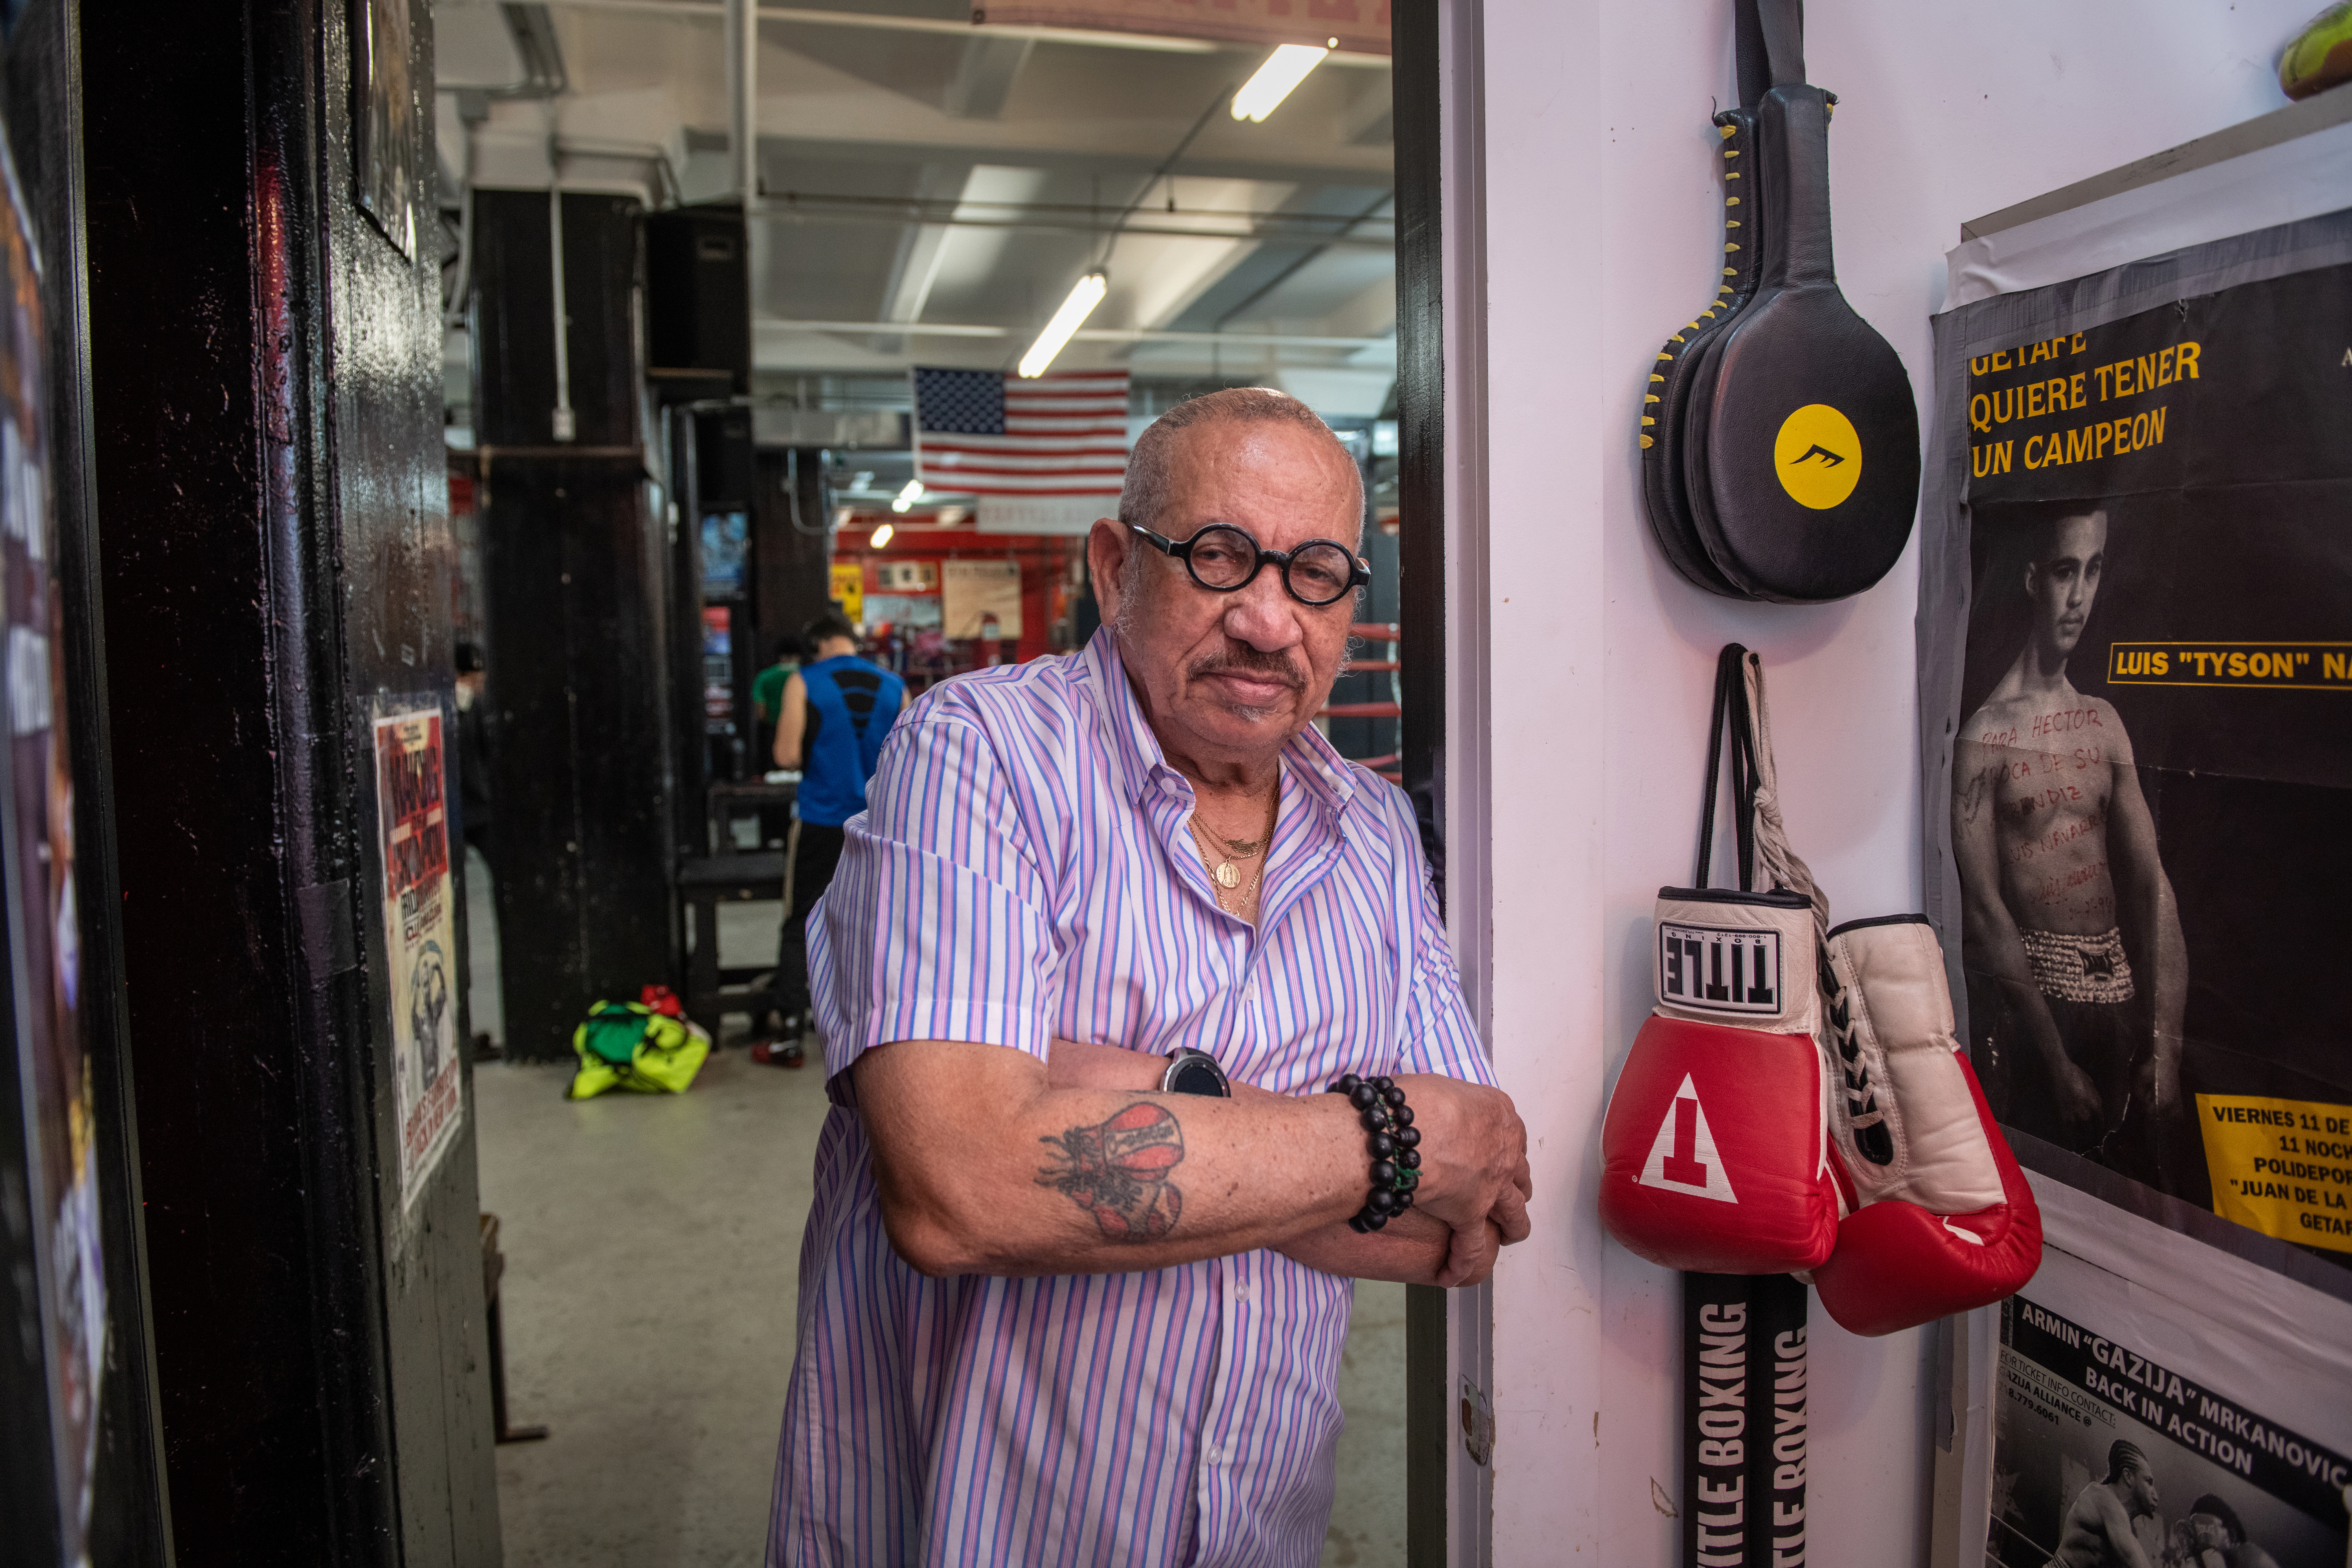 © 2019  PHILIP GREENBERG philipgreenberg1@gmail.com  917 804 8385 www.pgreenbergphoto.com   Hector Roca, a fixture at the famed and fabled Gleason's Gym,                  Possession of images does not give permission for use.  Always  Check with Photographer before intended usage.   Always Check with photographer for Editorial use and requests by magazines ...                  Possession of images does not always give permission for use.          ©2019 Philip Greenberg 917 804 8385  philipgreenberg1@gmail.com